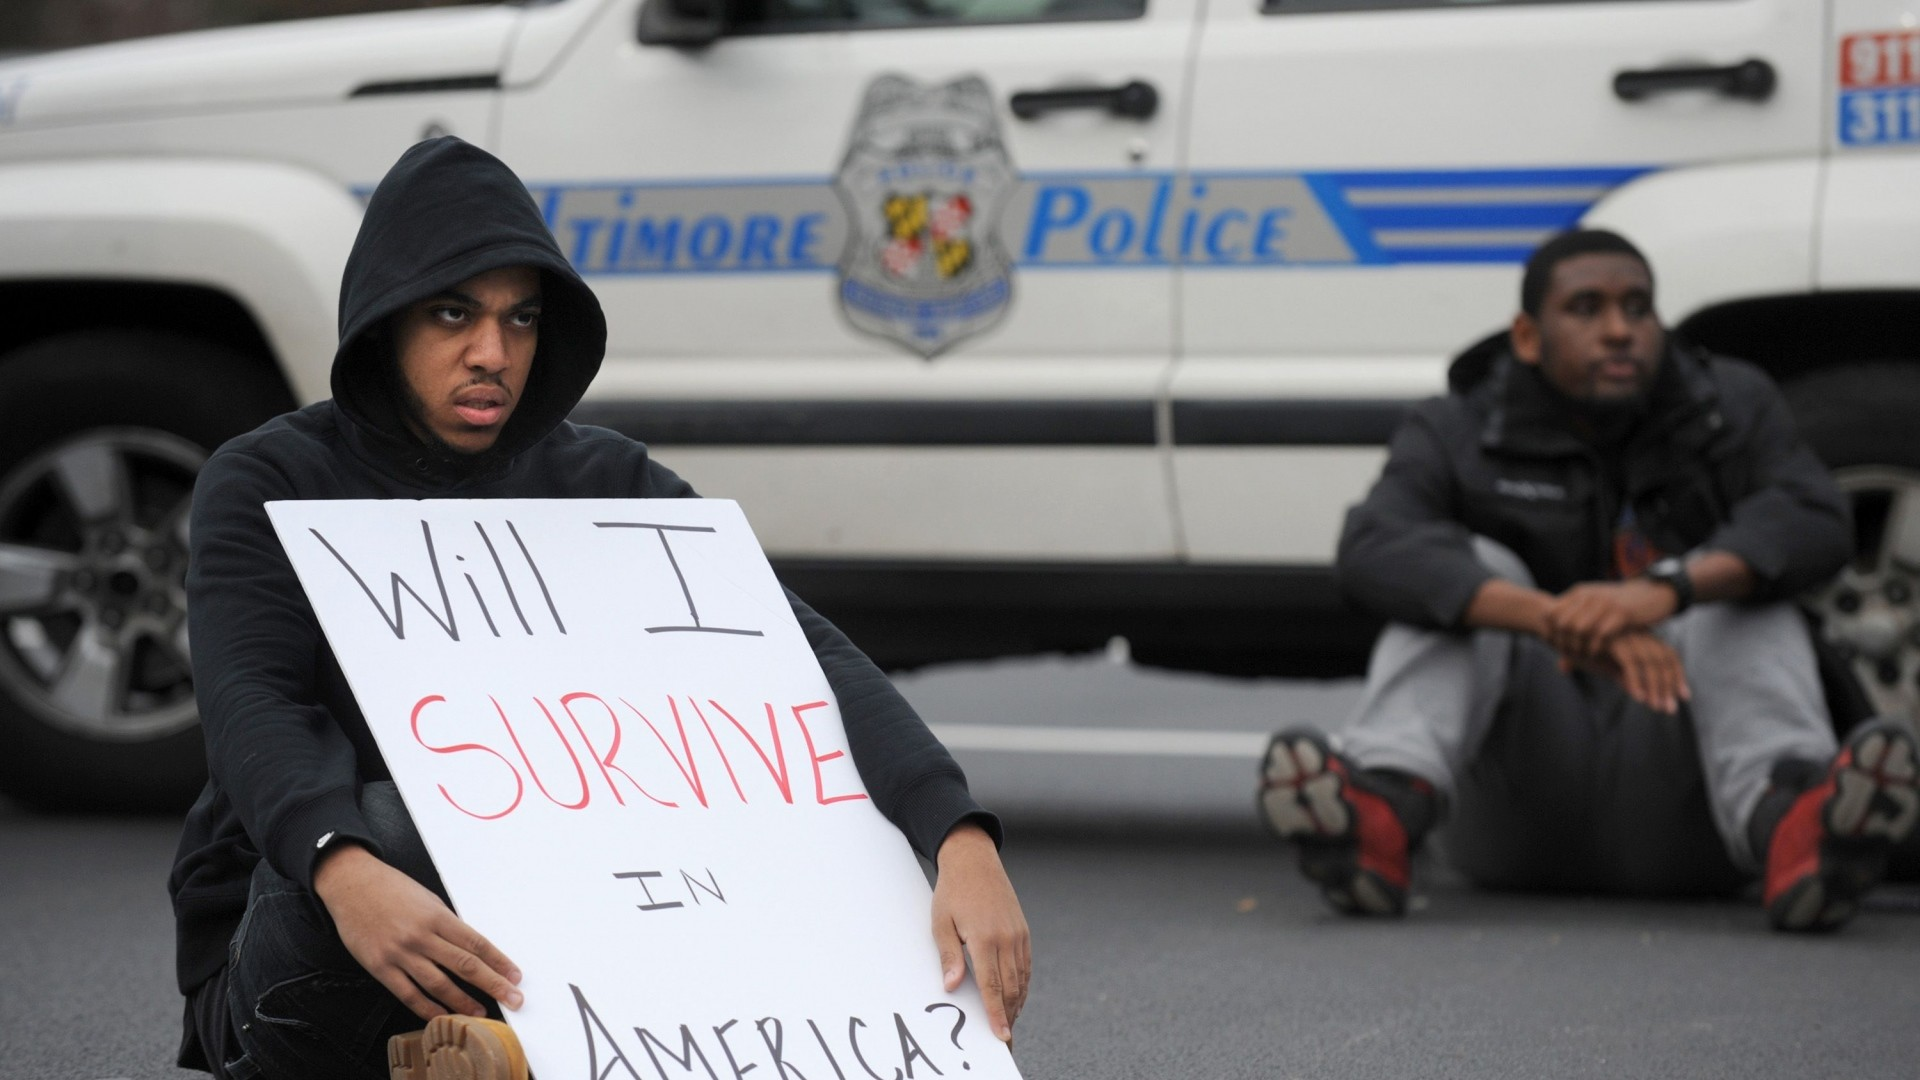 Wallpaper freddie gray, 2015, baltimore, baltimore protest, police,  car